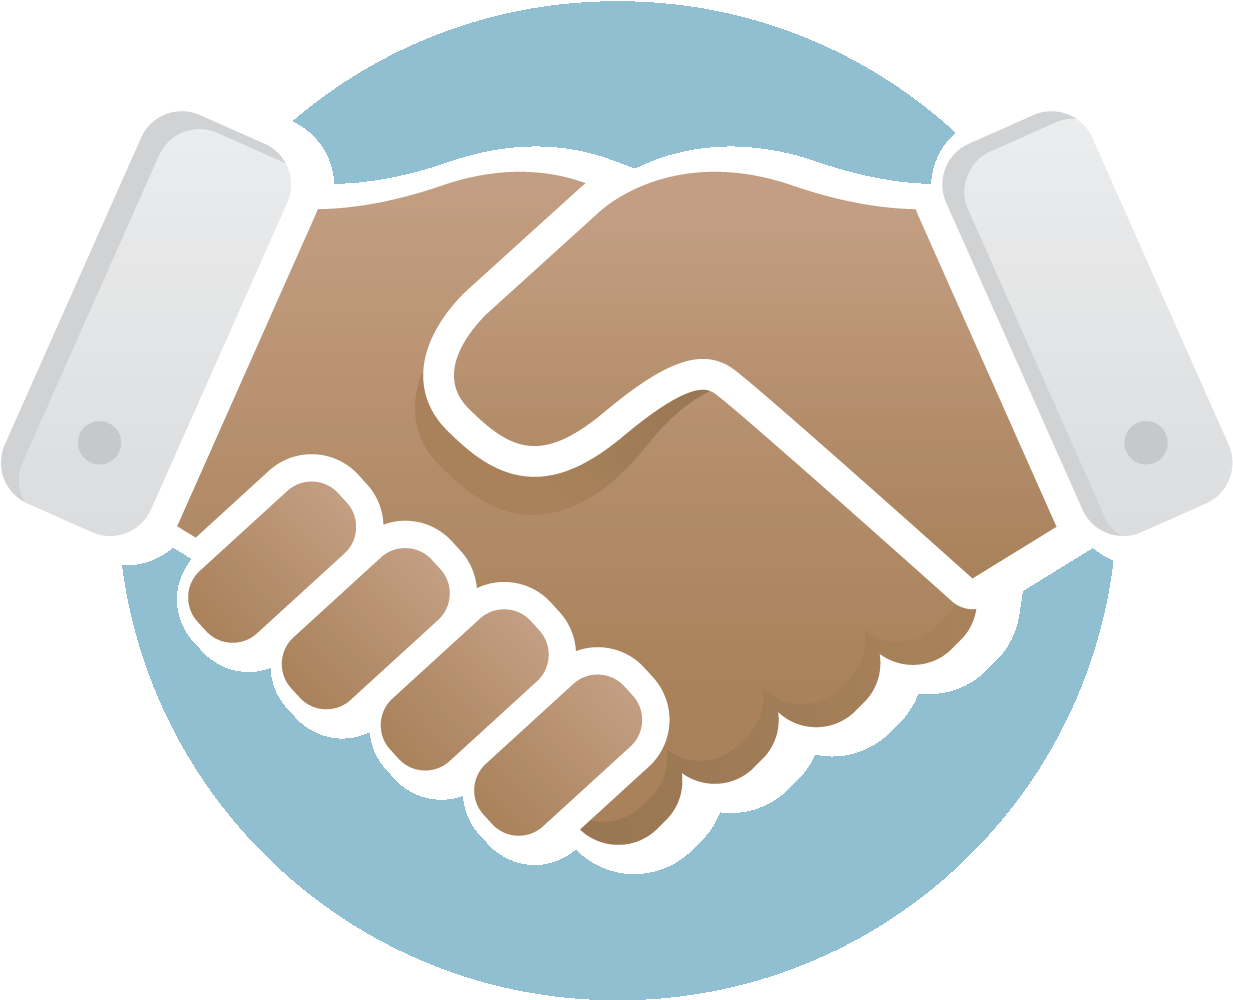 Logo png icon . Contract clipart handshake